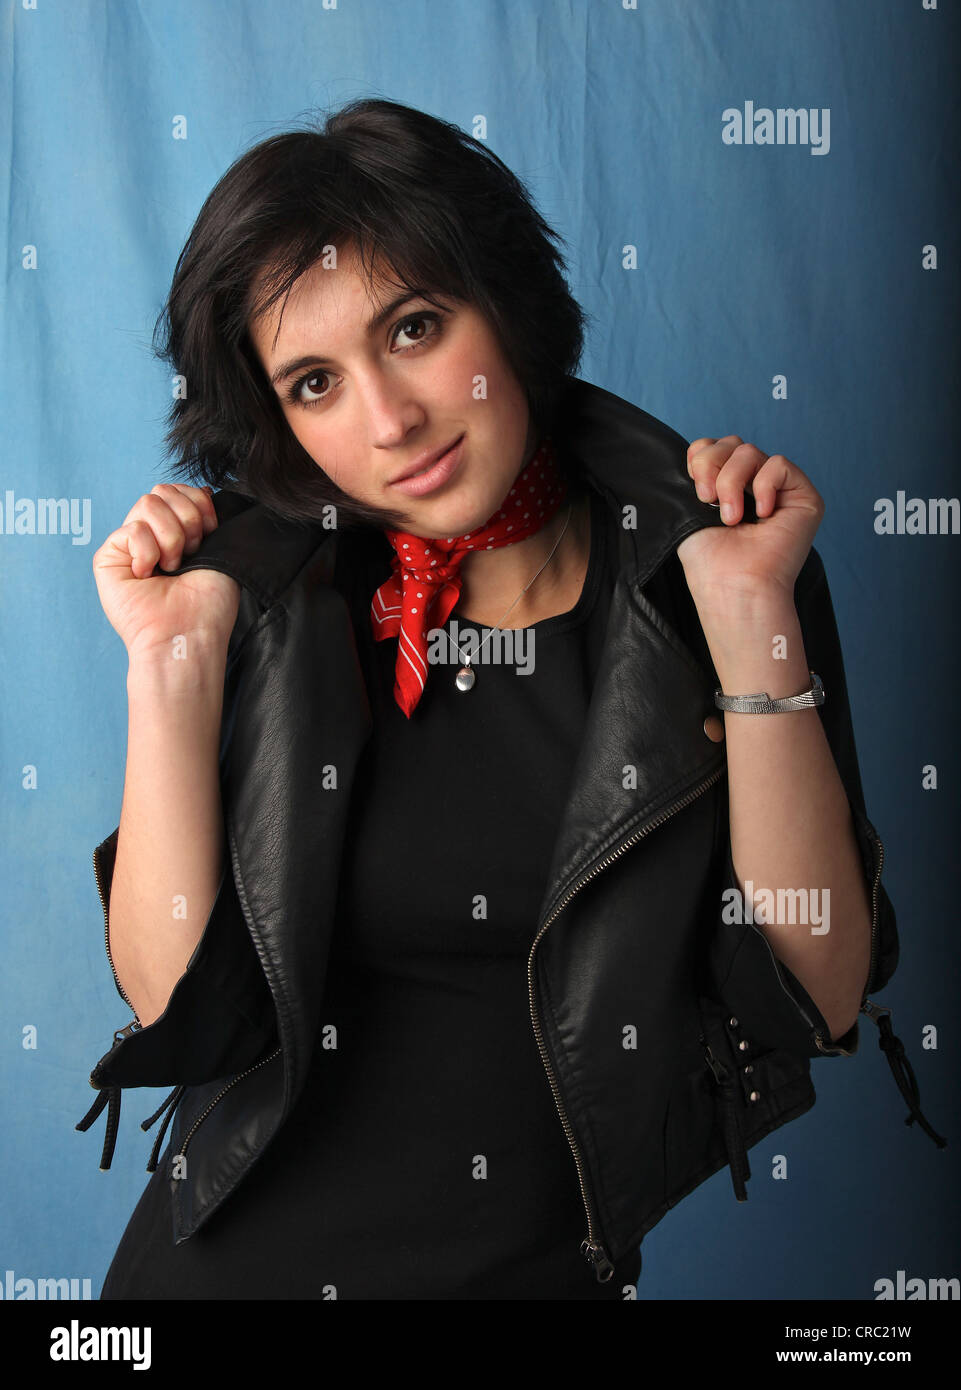 Jocelyn in a Grease-style biker outfit. - Stock Image